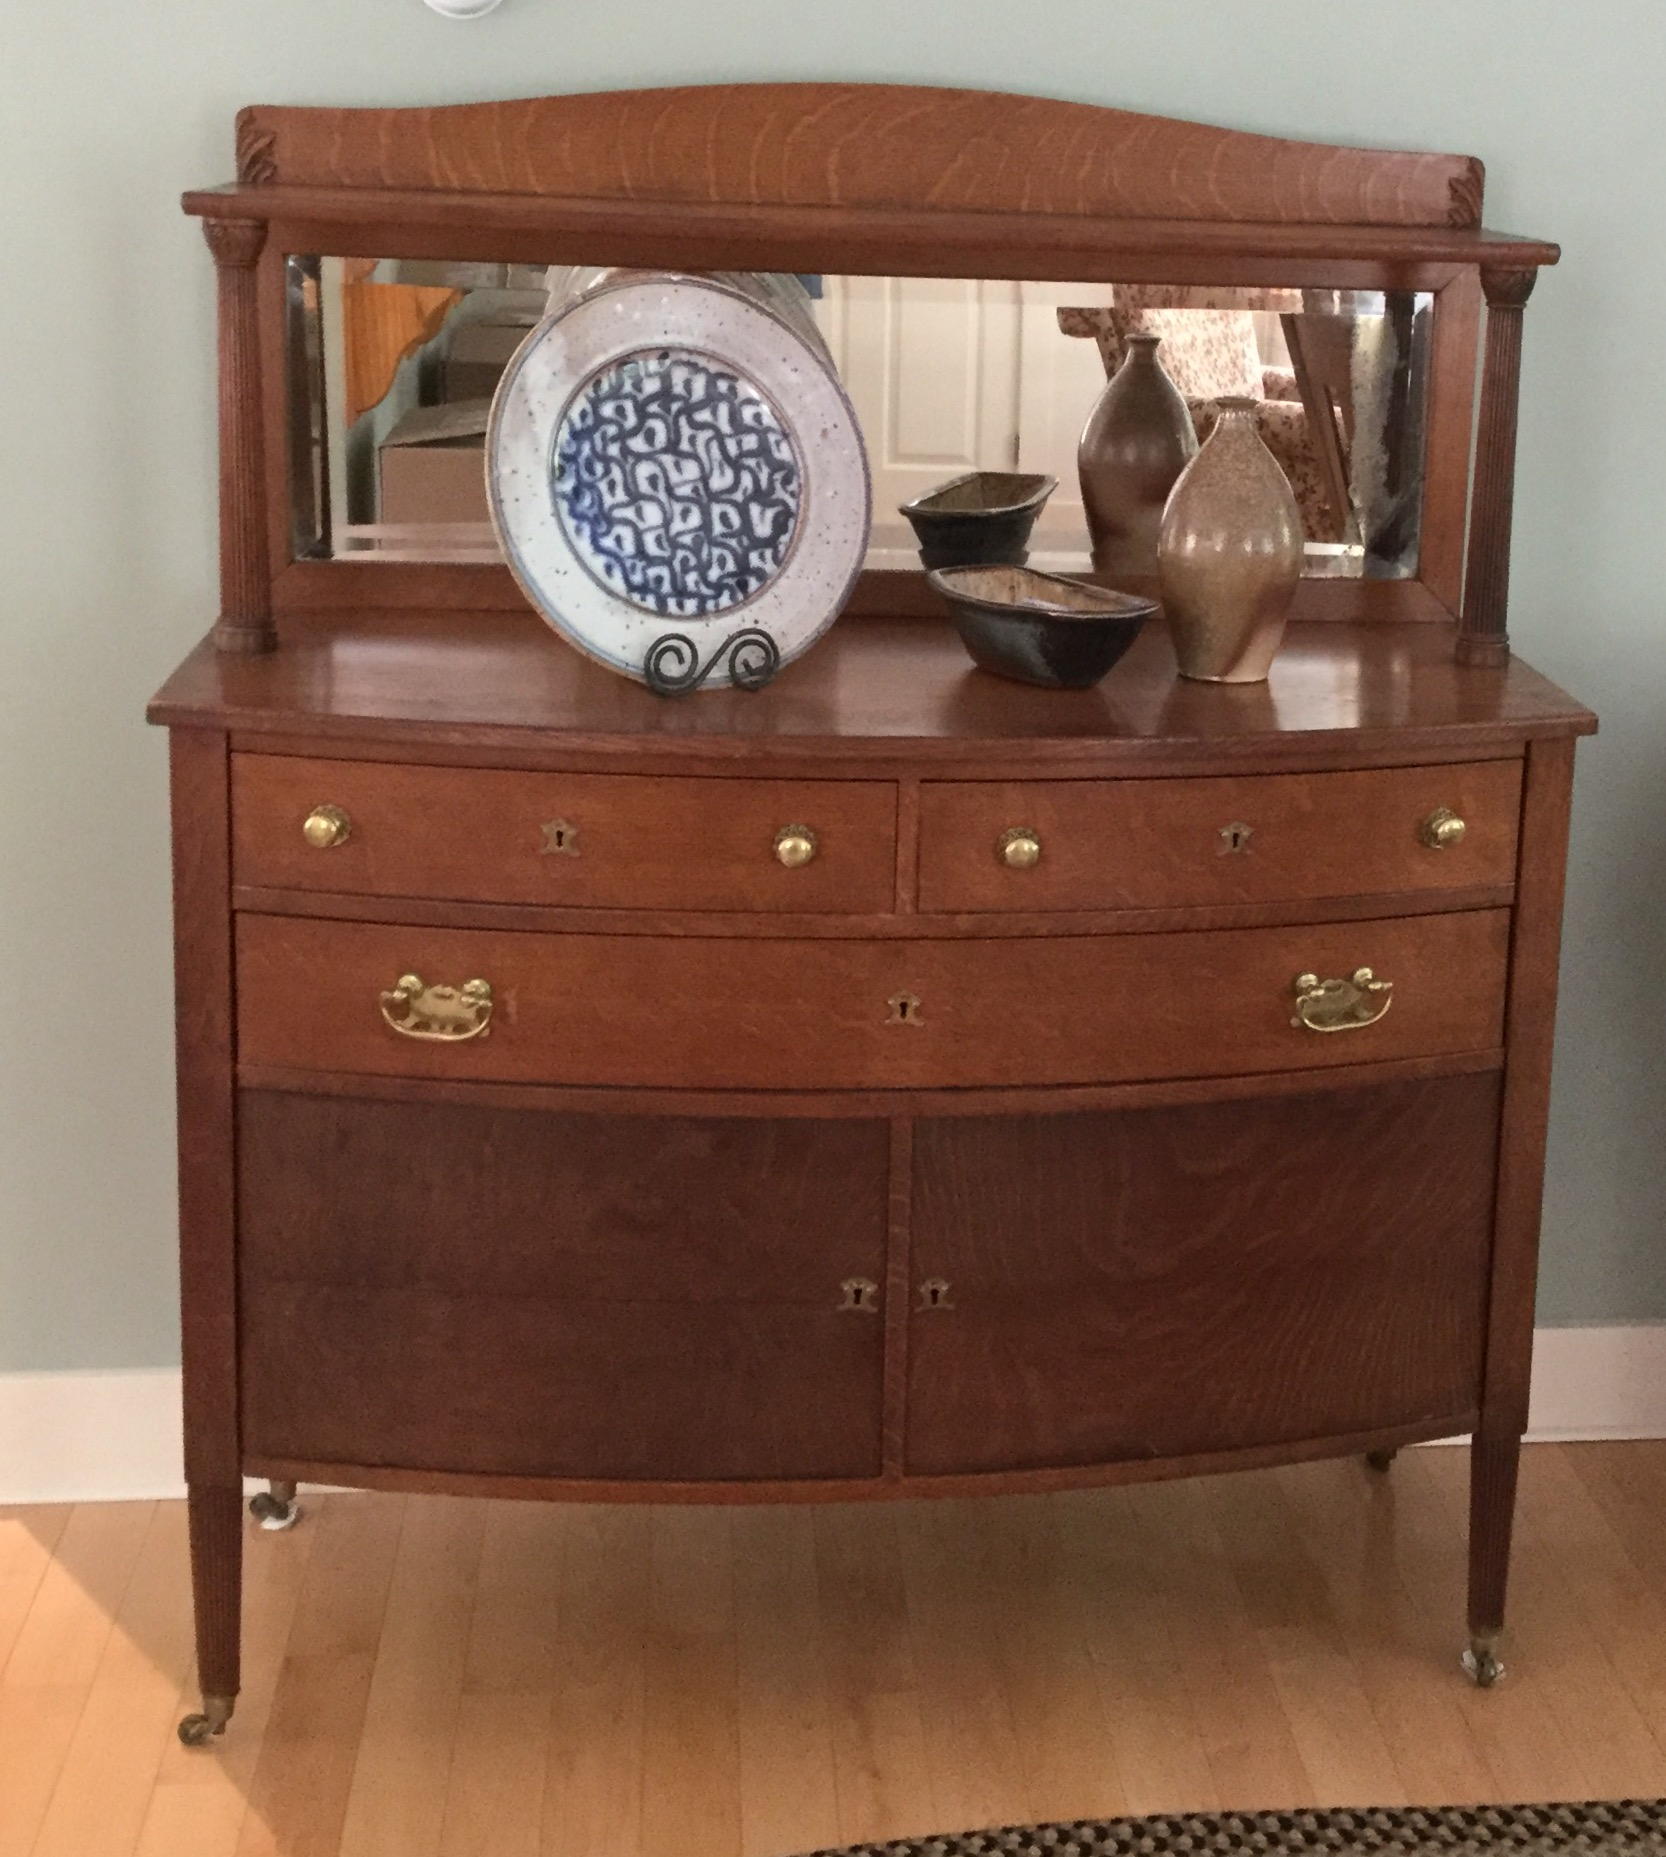 Merrill Furniture Ellsworth Maine Furniture Business: Buffet With Mirror For Sale